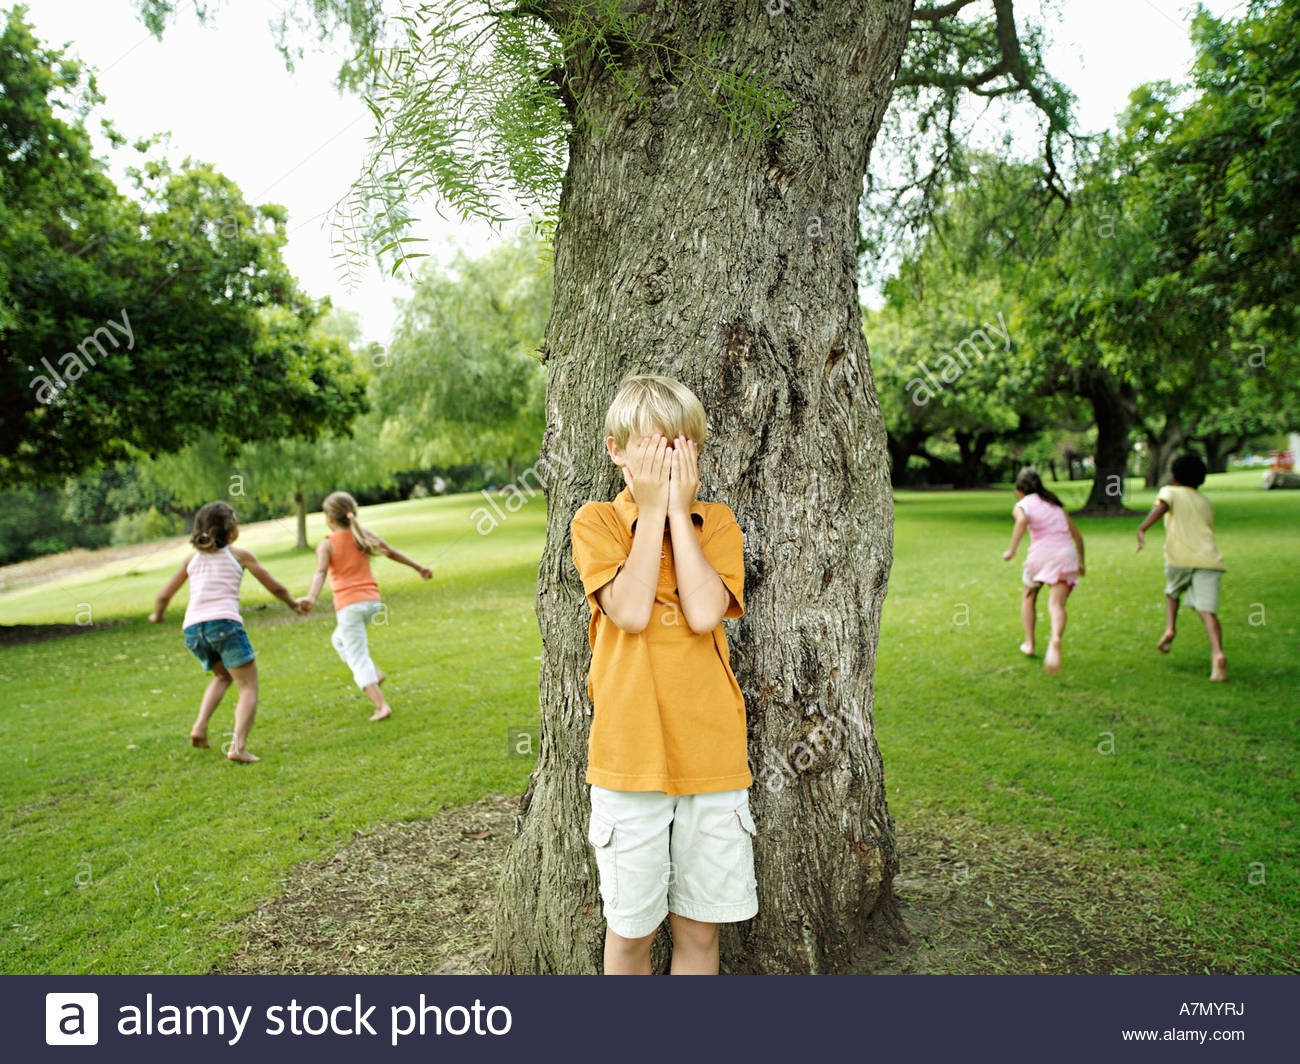 Boy 7 9 with hands covering eyes playing hide and seek in park hiding from friends behind tree Stock Photo